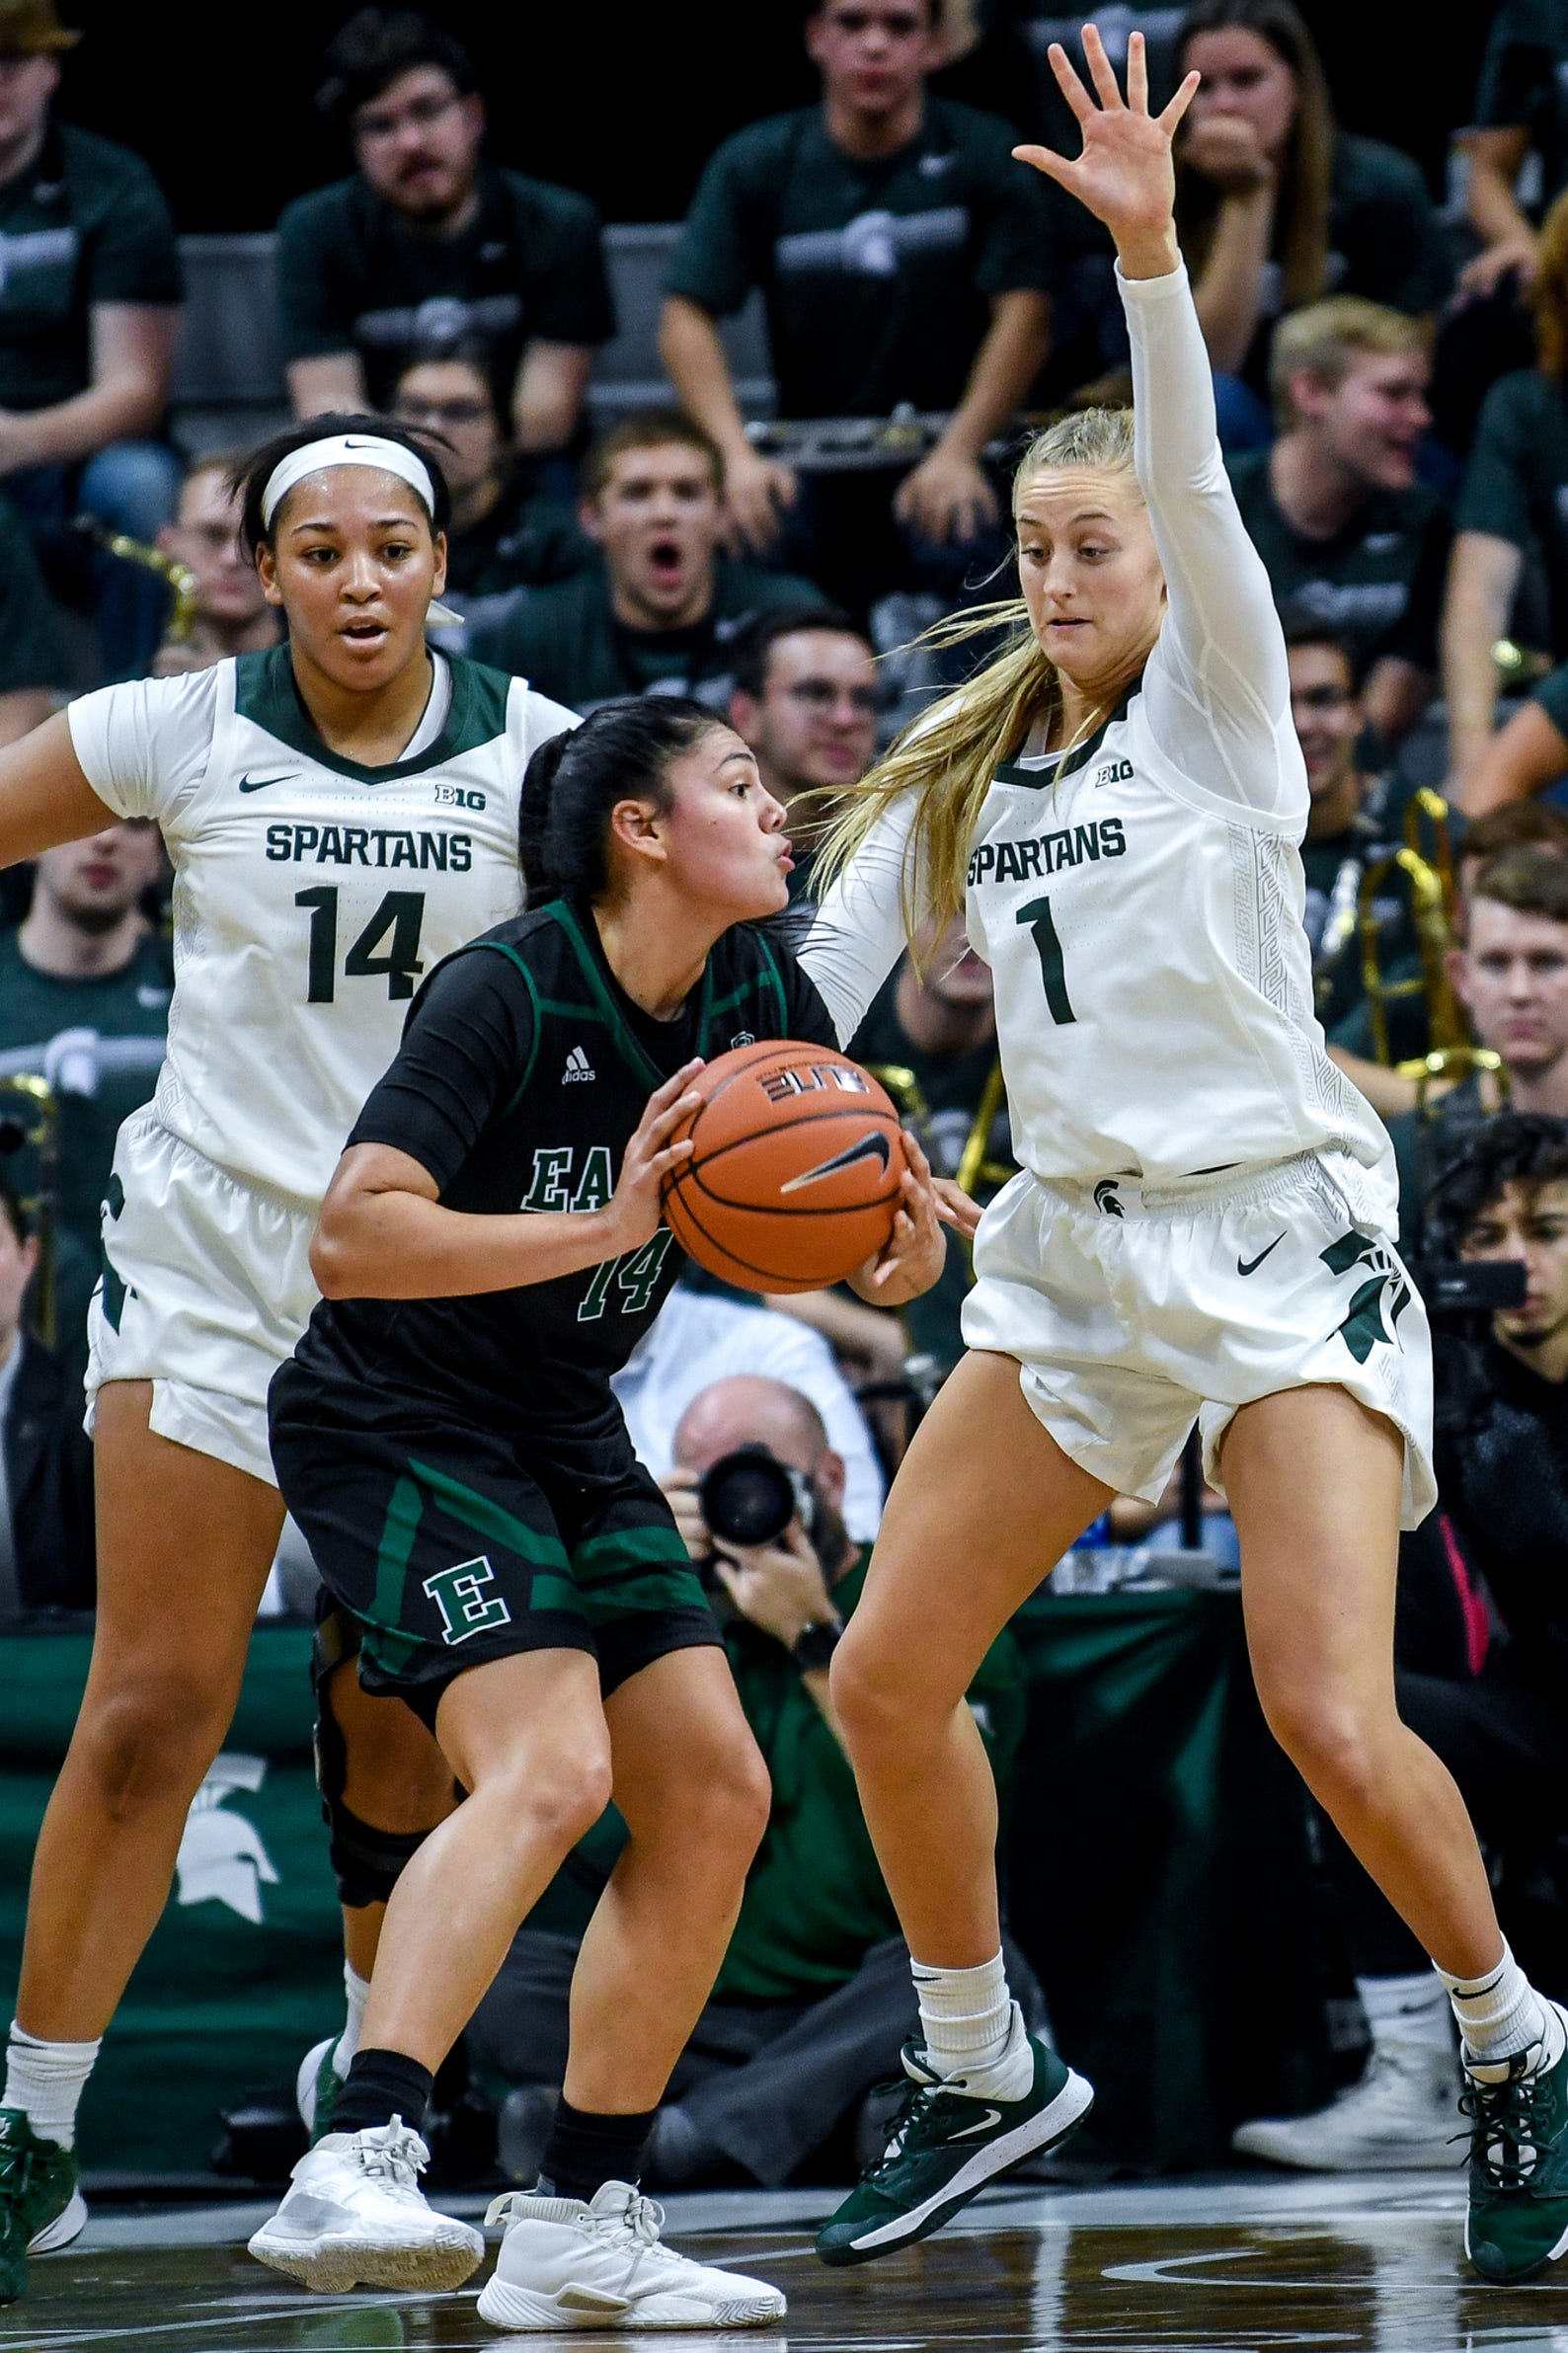 Michigan State's Taiyier Parks, left, and Tory Ozment, right, pressure Eastern Michigan's Natalia Pineda during the  fourth quarter on Tuesday, Nov. 5, 2019, at the Breslin Center in East Lansing.